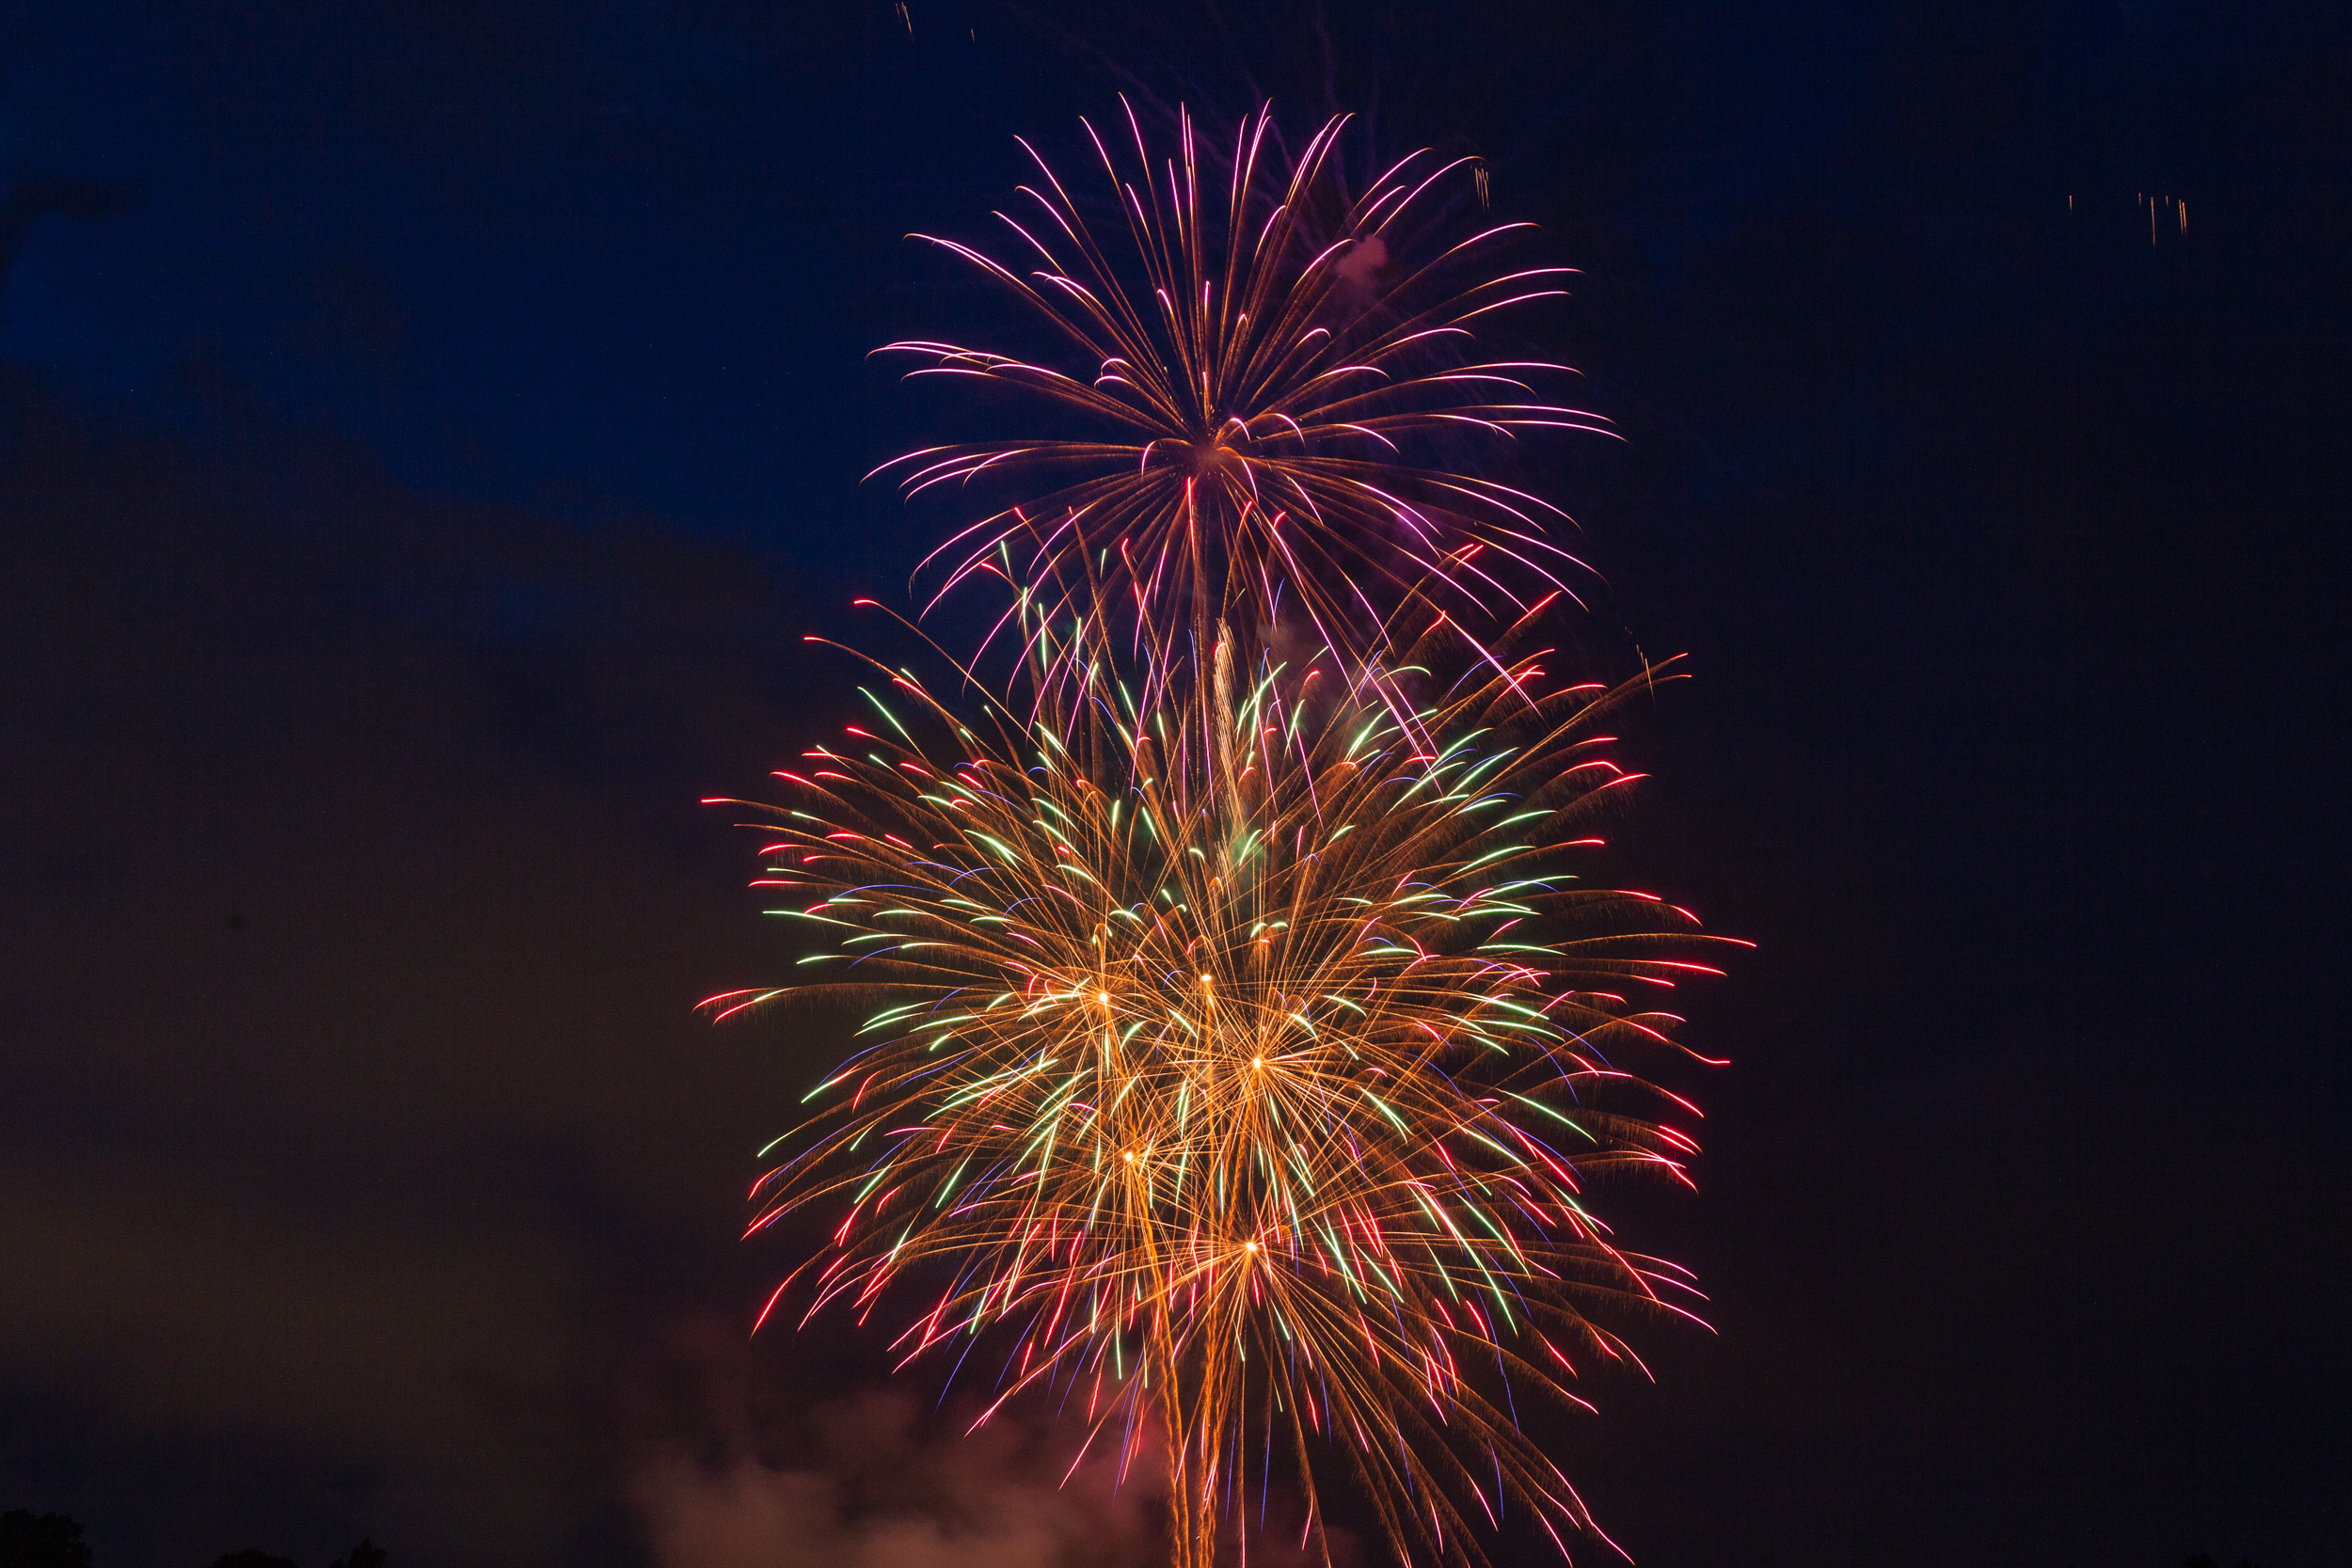 July 4th fireworks at Boone NC 2019-07-04-005.jpg